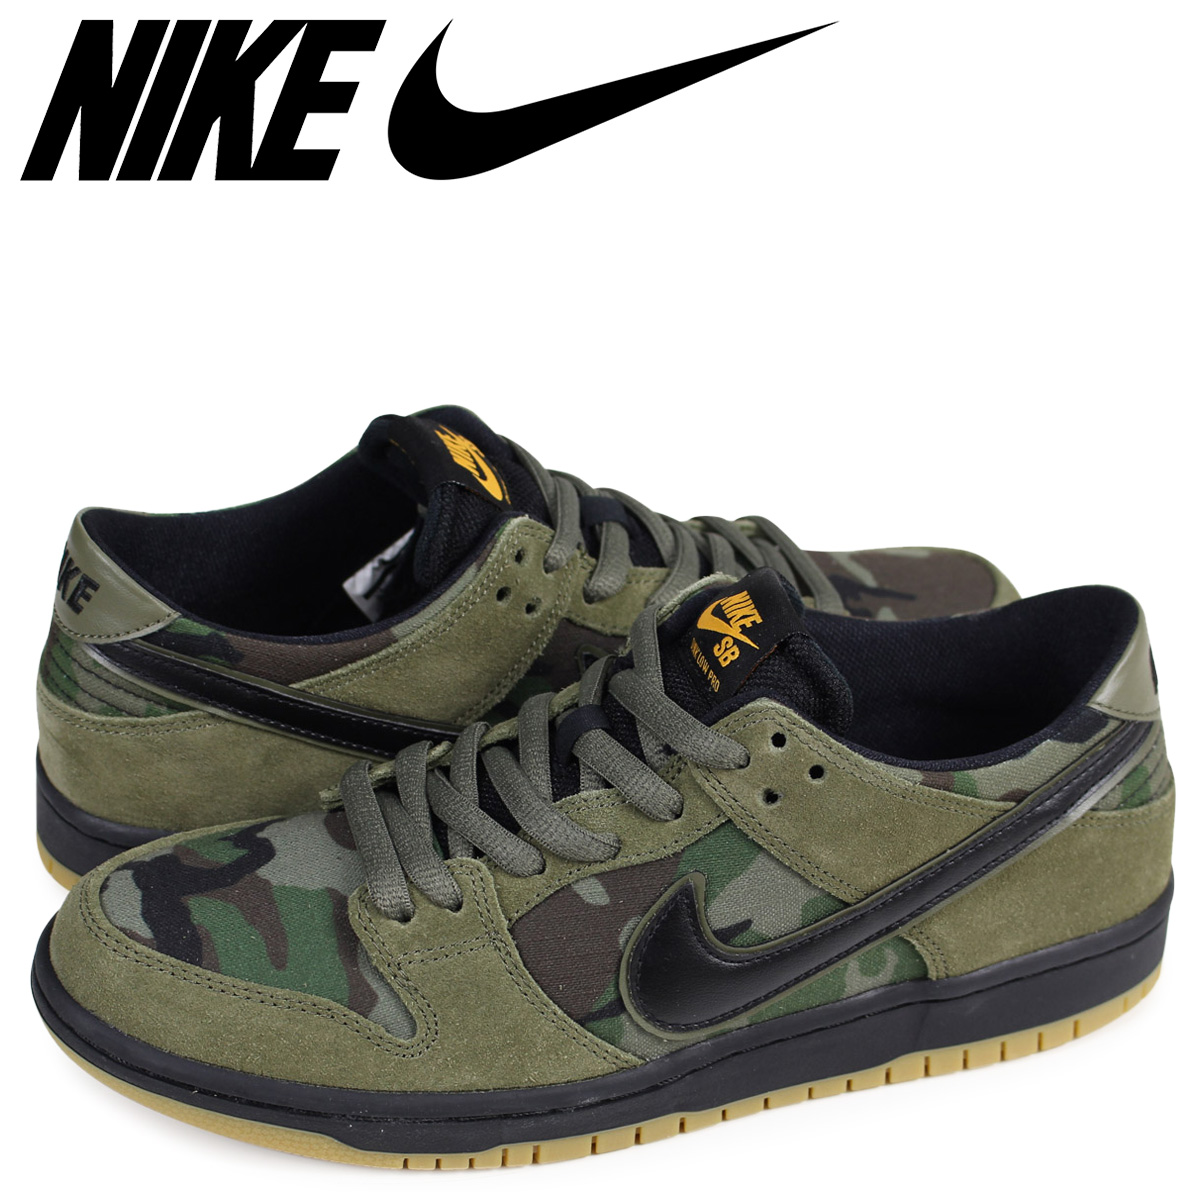 6fde35cfb705a NIKE Nike SB dunk low sneakers men ZOOM DUNK LOW PRO 854,866-209 olive duck  ...